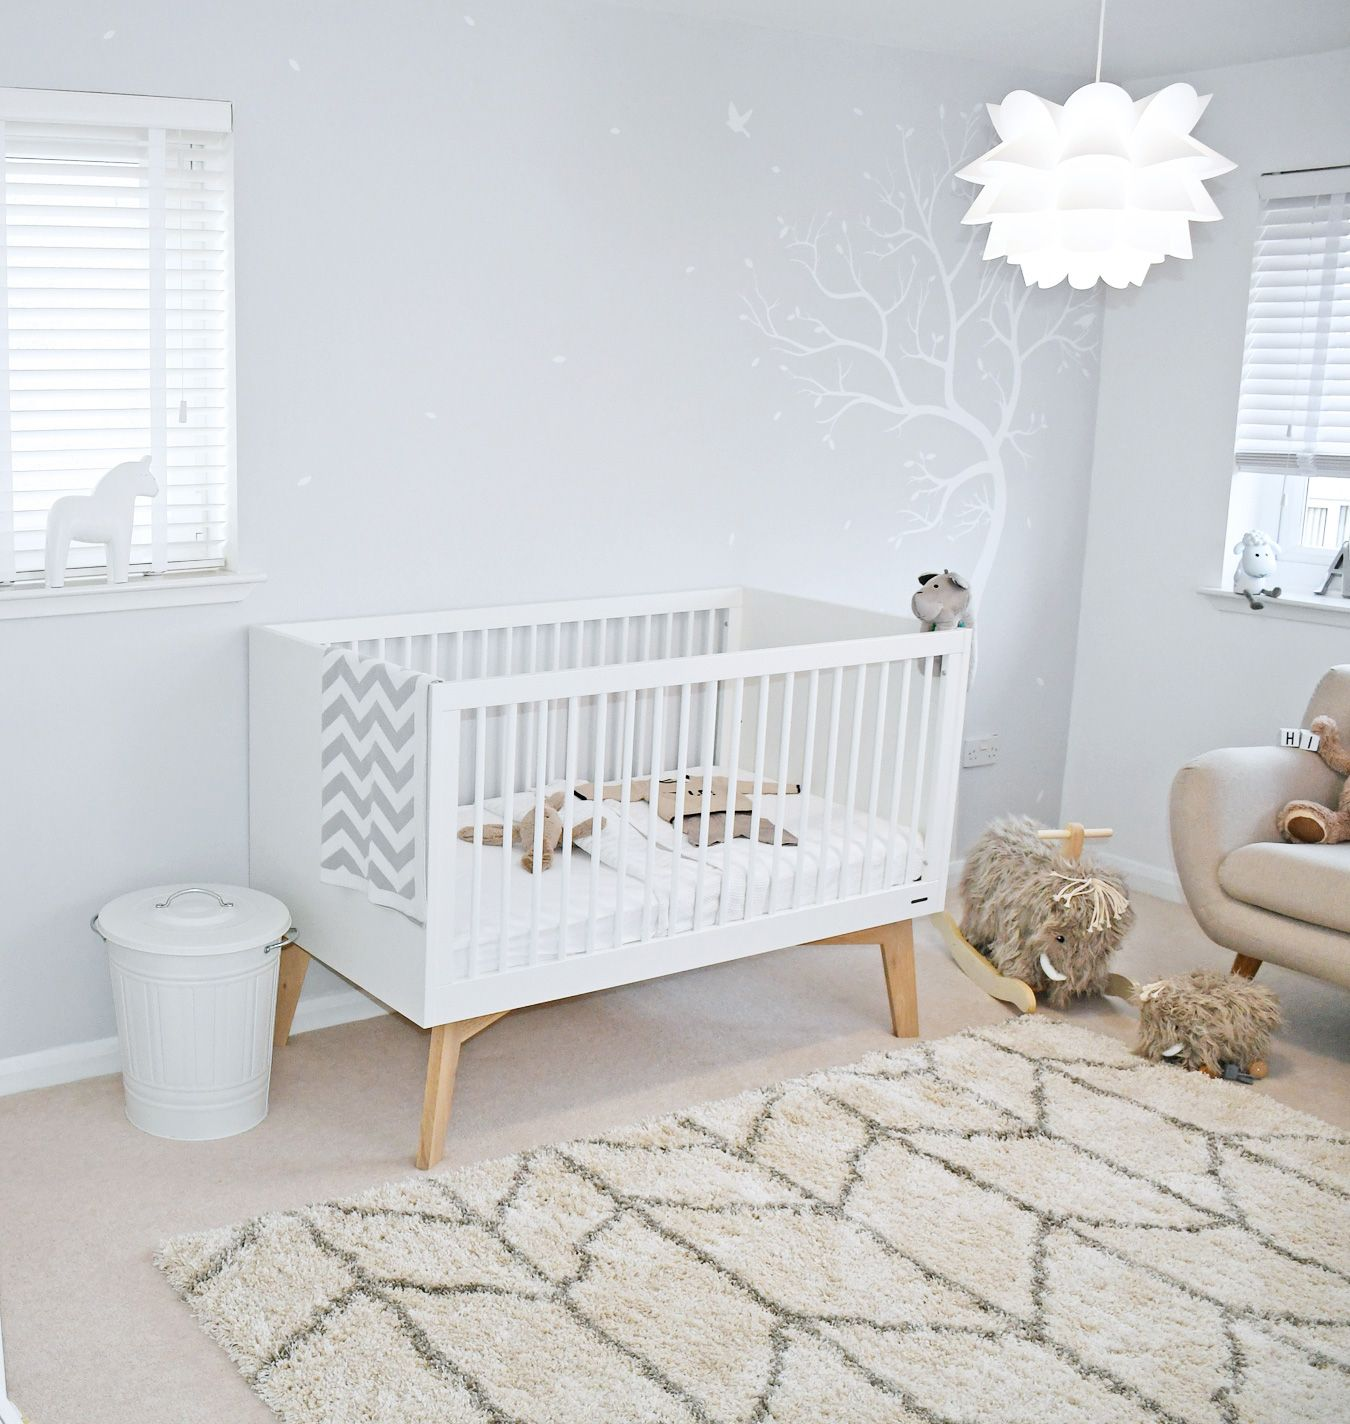 Scandinavian Nursery With Grey And White Walls Scandinavian Style Cot And Chevron Rug Scandinavian Baby Room Appartment Decor Baby Room